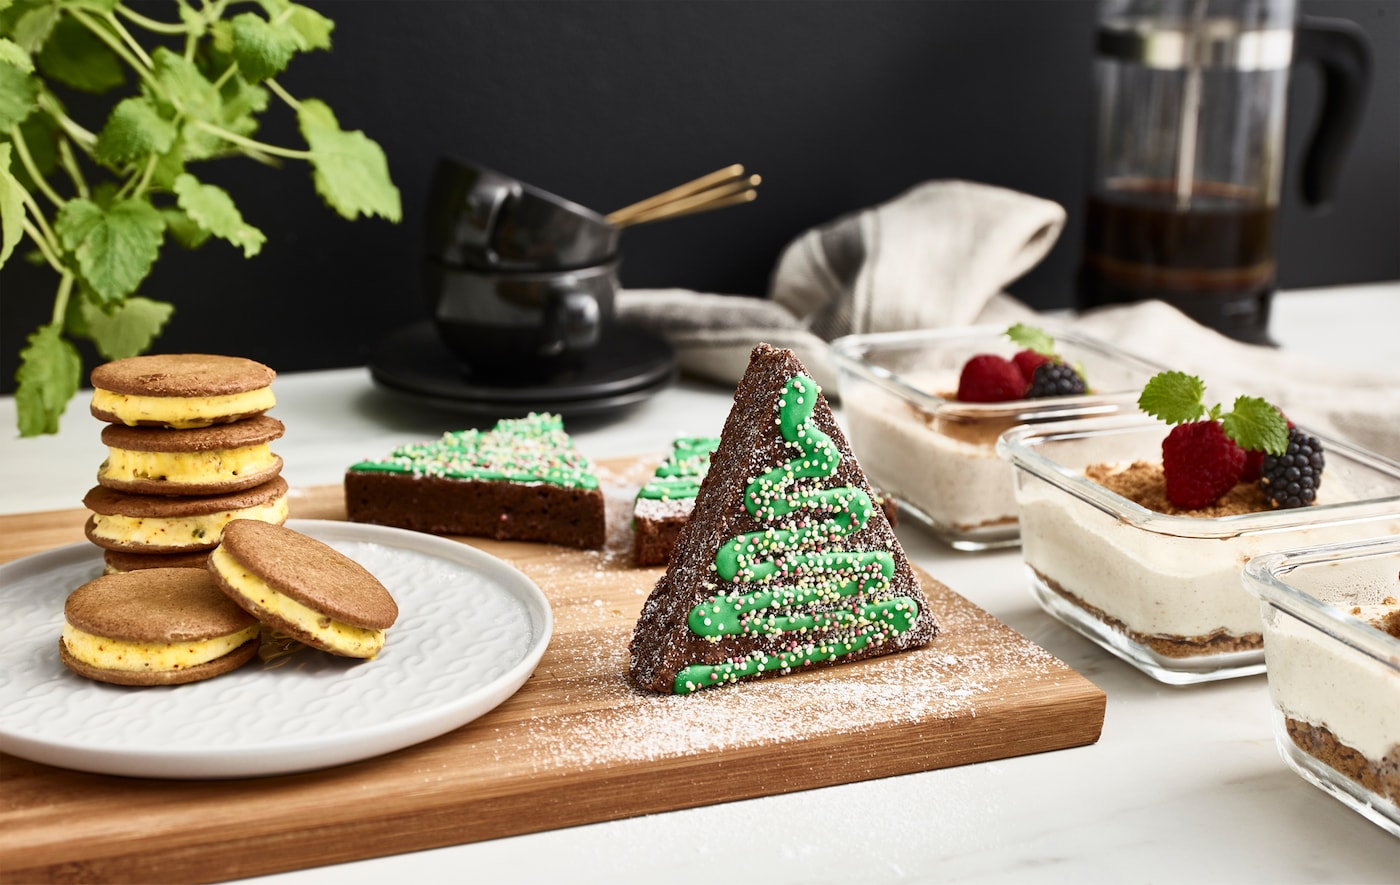 Frozen desserts, ginger snaps, festively decorated cakes, coffee cups and brewed coffee on a work top.